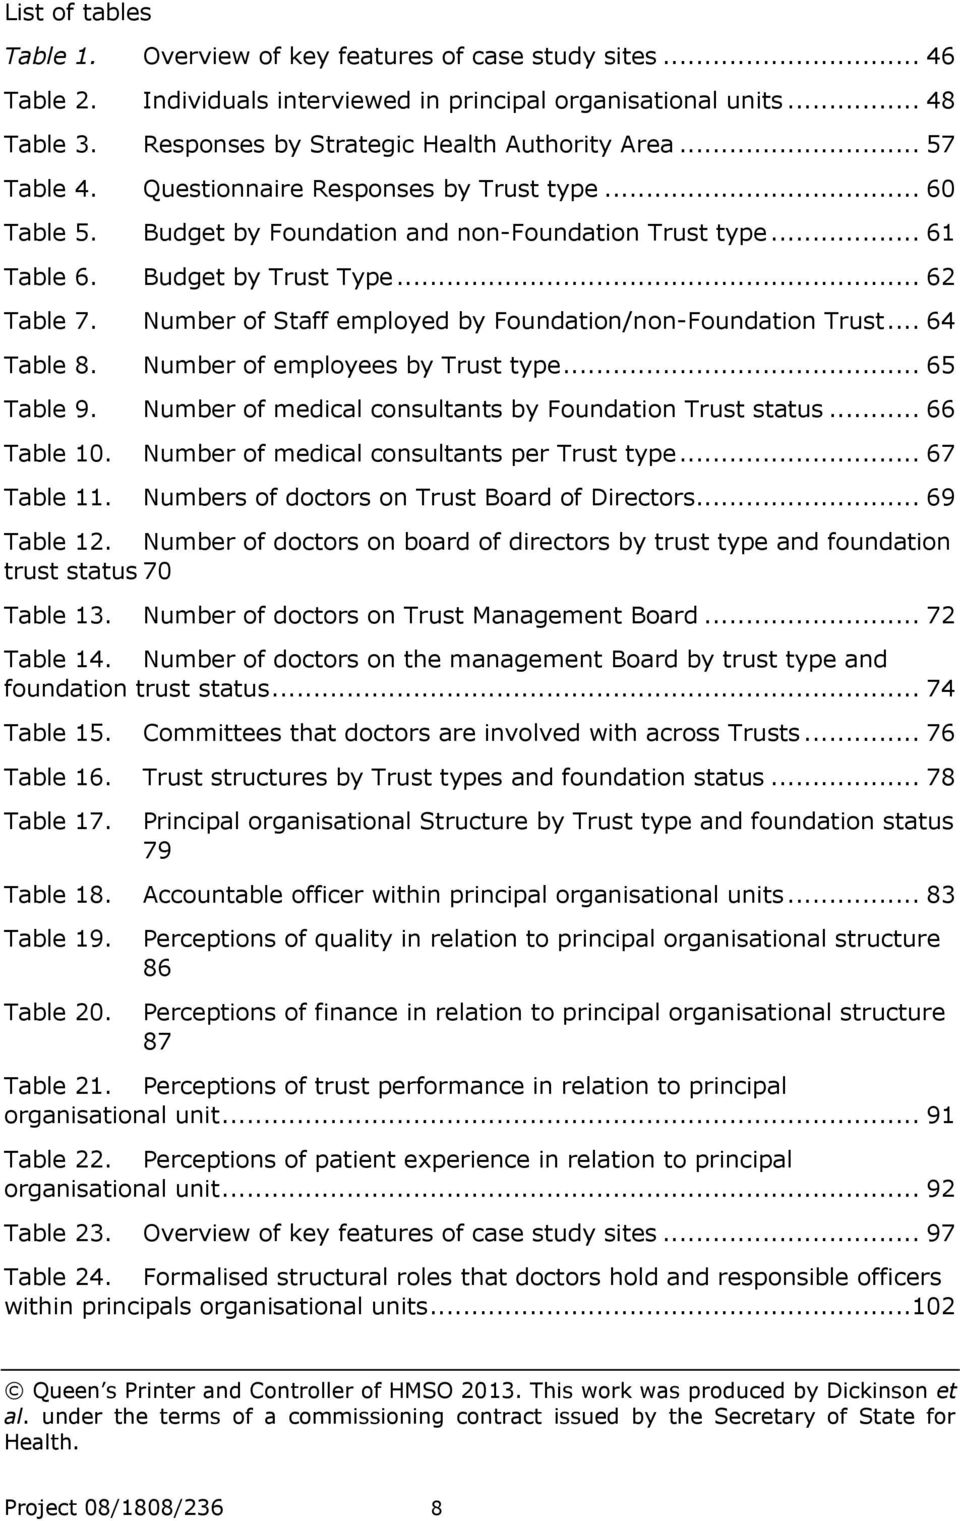 .. 62 Table 7. Number of Staff employed by Foundation/non-Foundation Trust... 64 Table 8. Number of employees by Trust type... 65 Table 9. Number of medical consultants by Foundation Trust status.